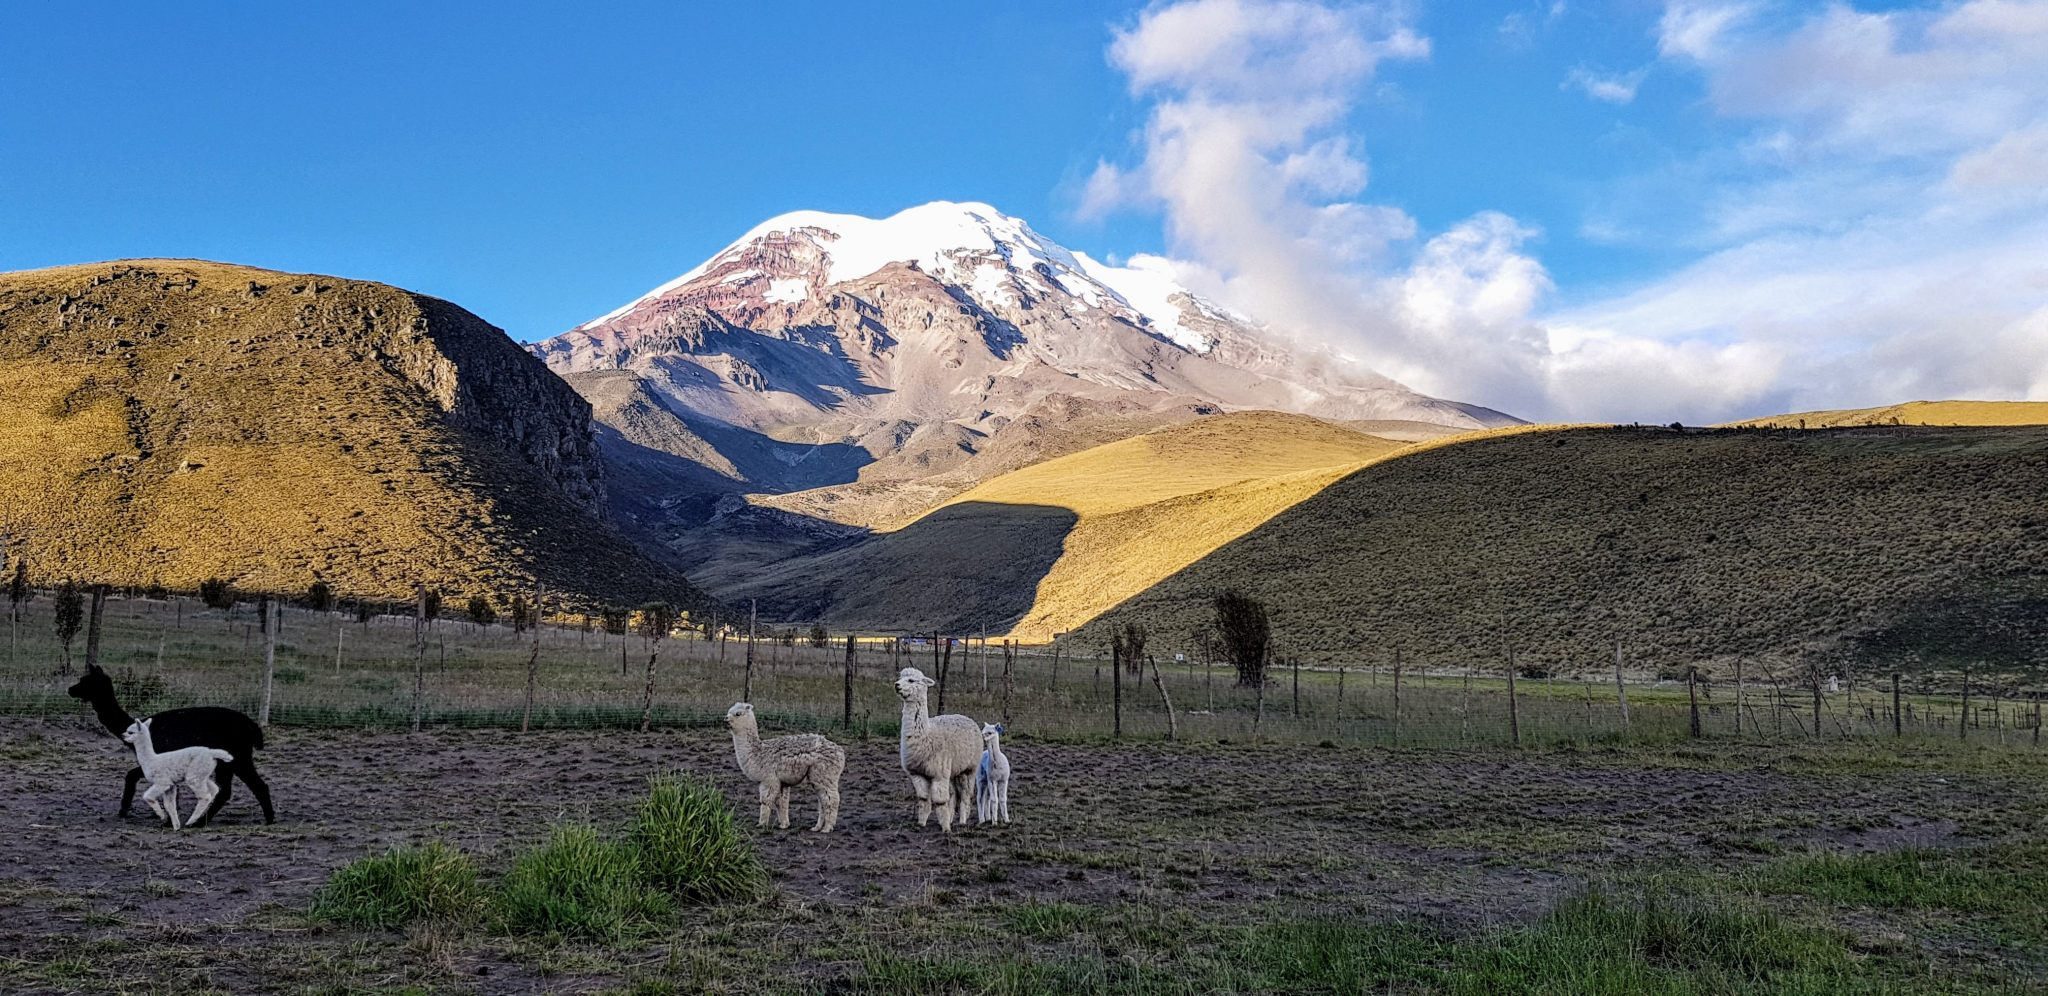 Summiting Chimborazo